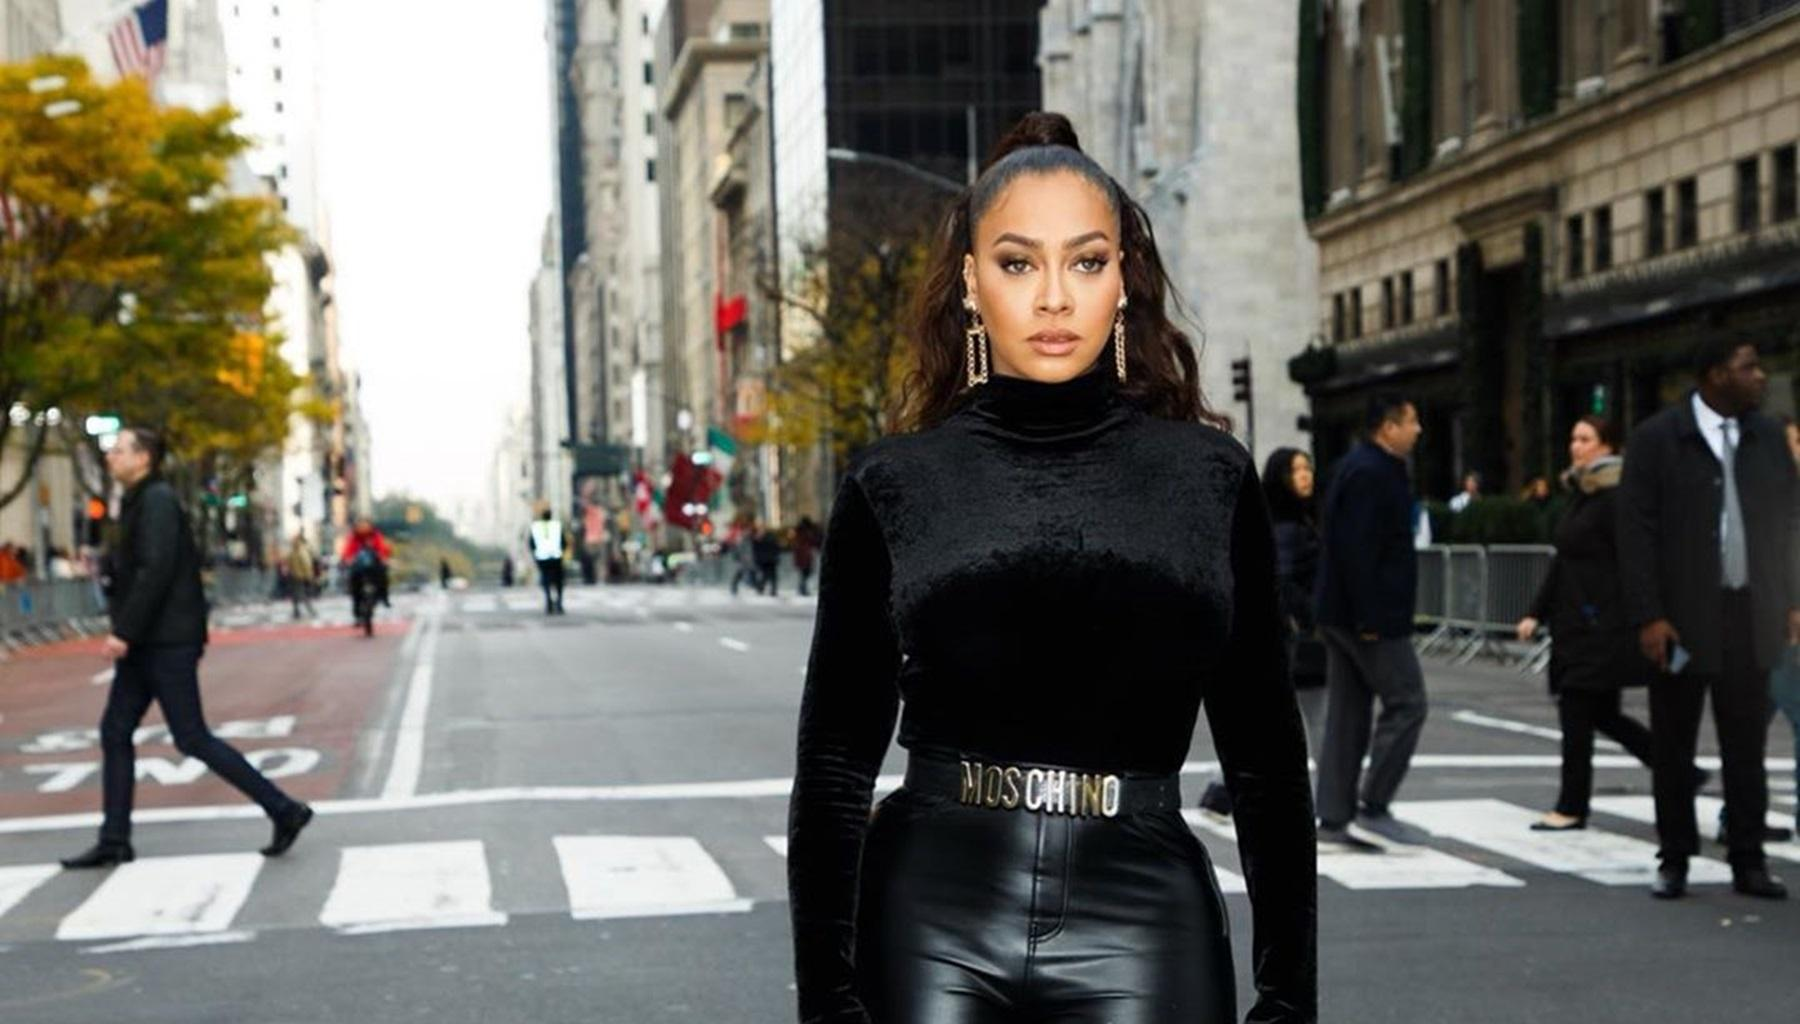 La La Anthony Has Fans Confused After She Shares Photos In Skin-Colored Latex Outfit